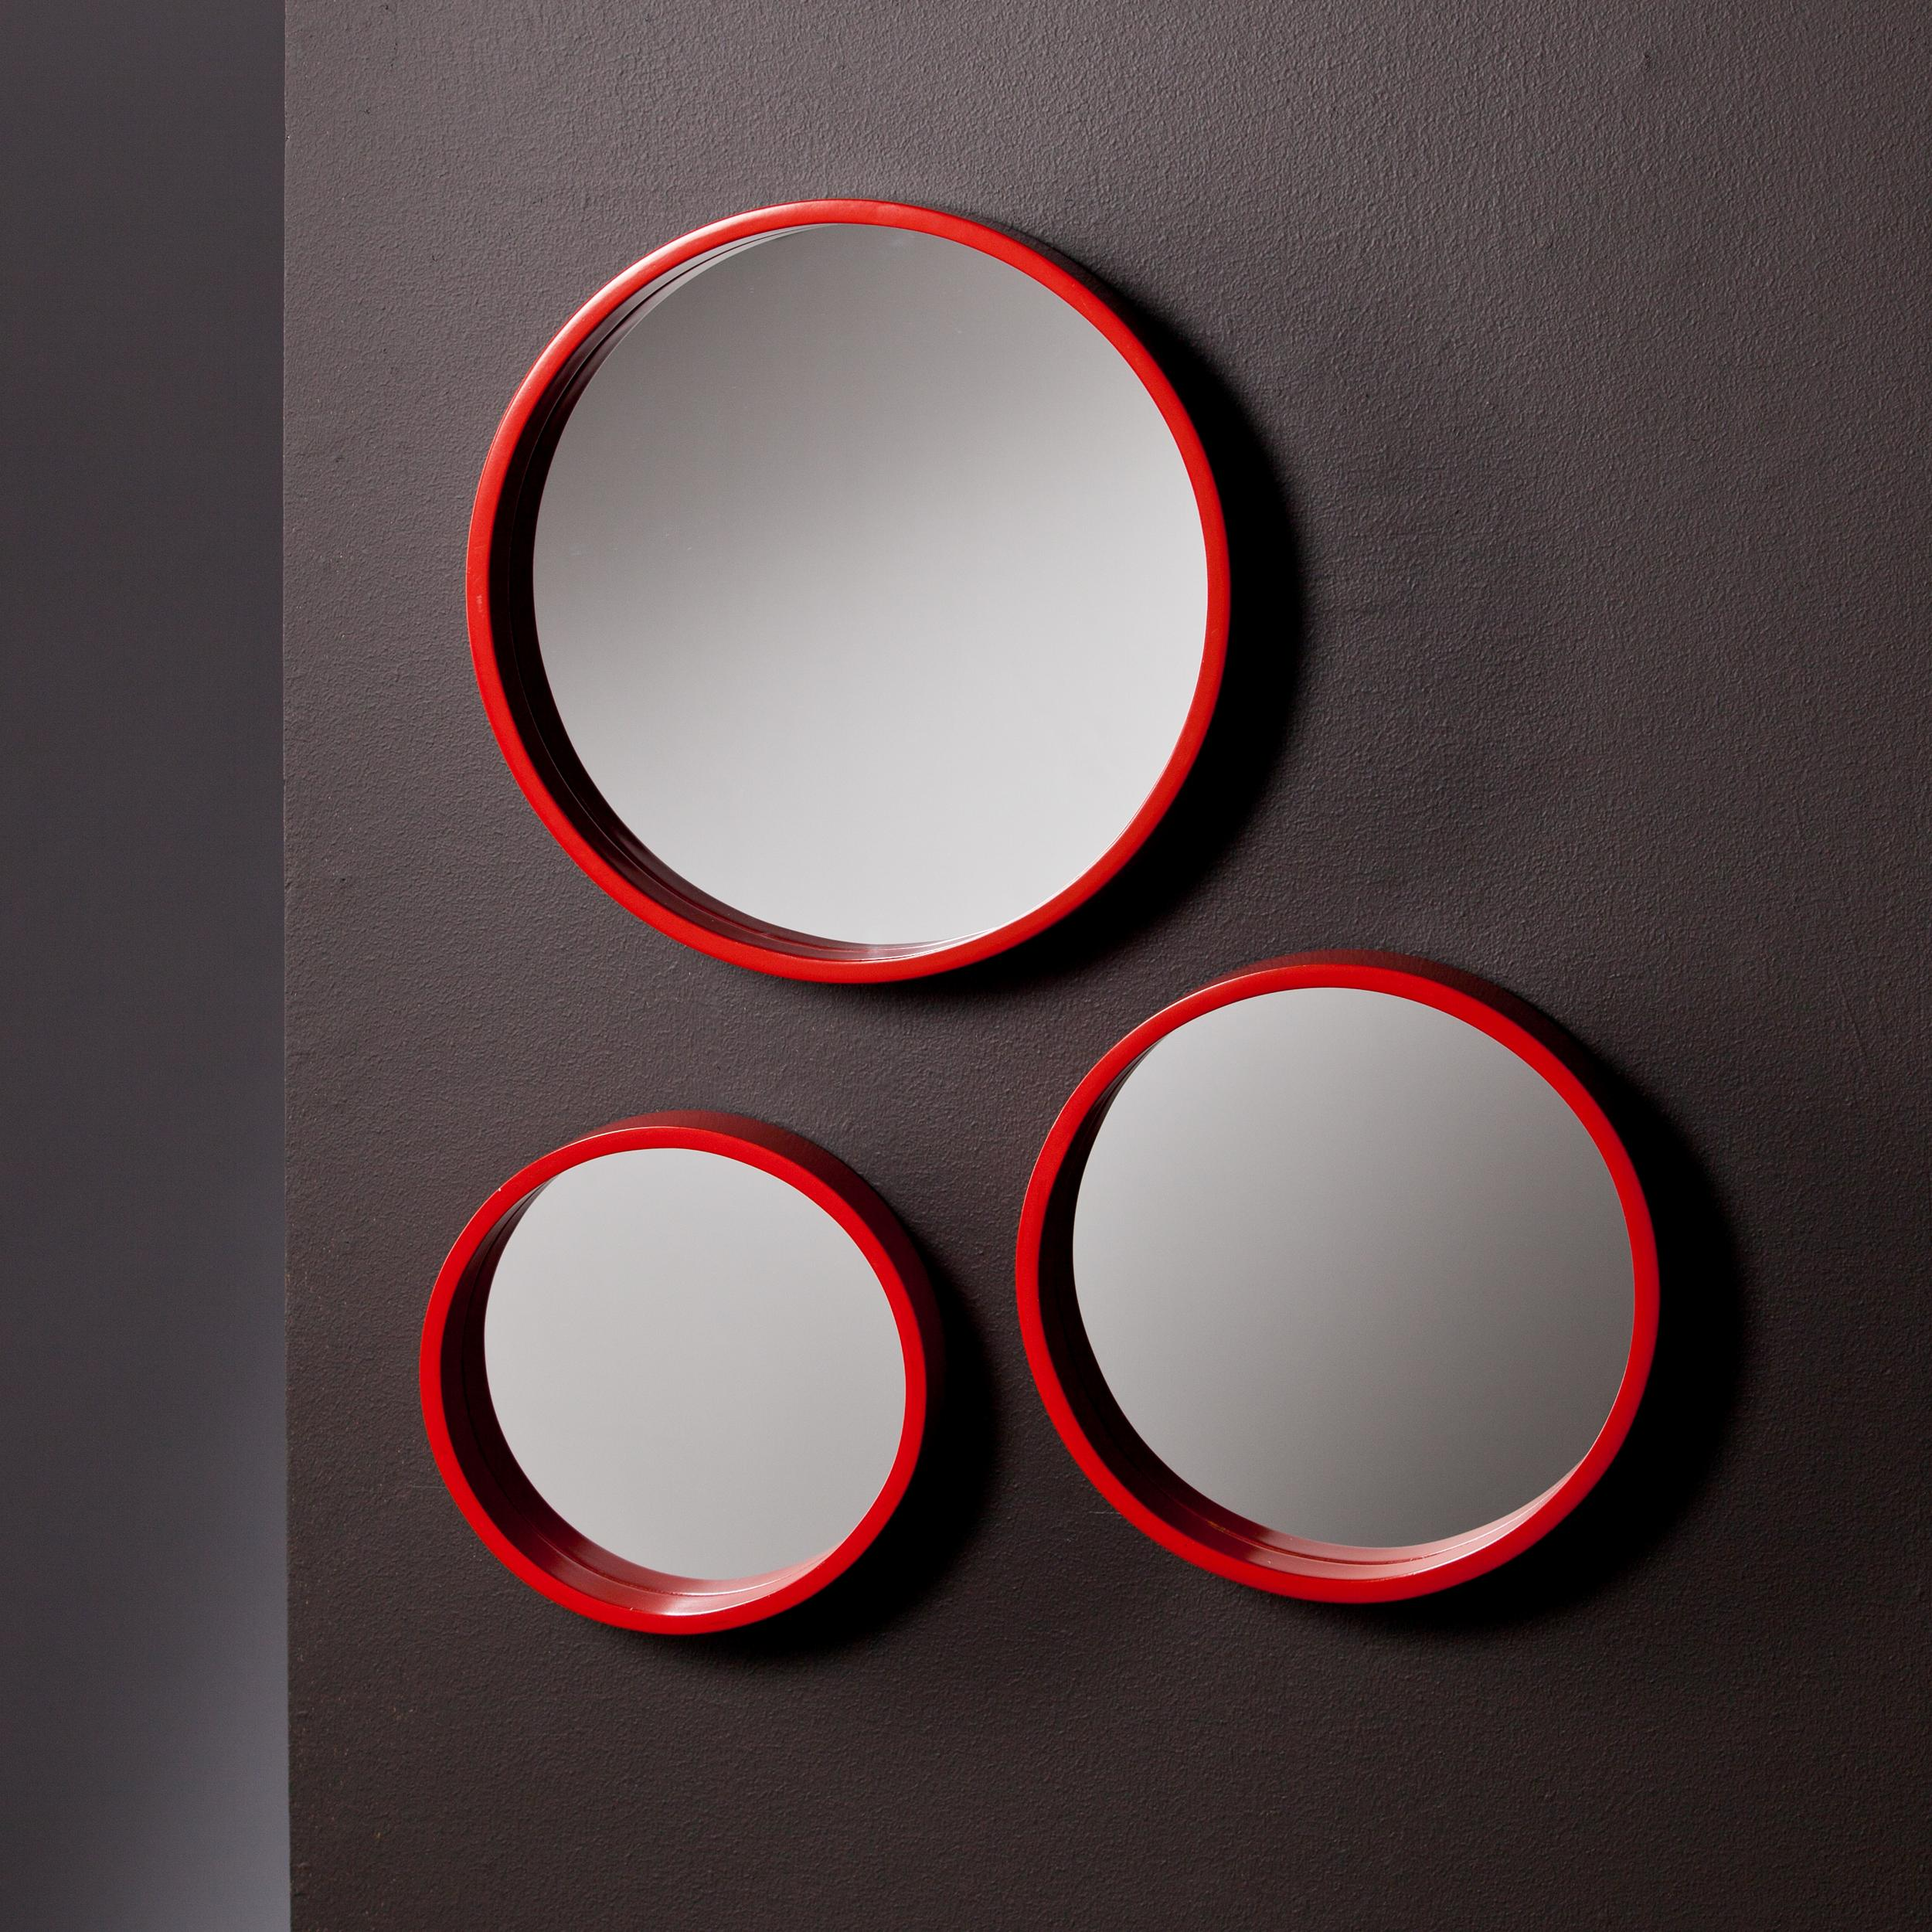 Amazon holly martin daws wall mirror 3pc set red orange view larger amipublicfo Gallery